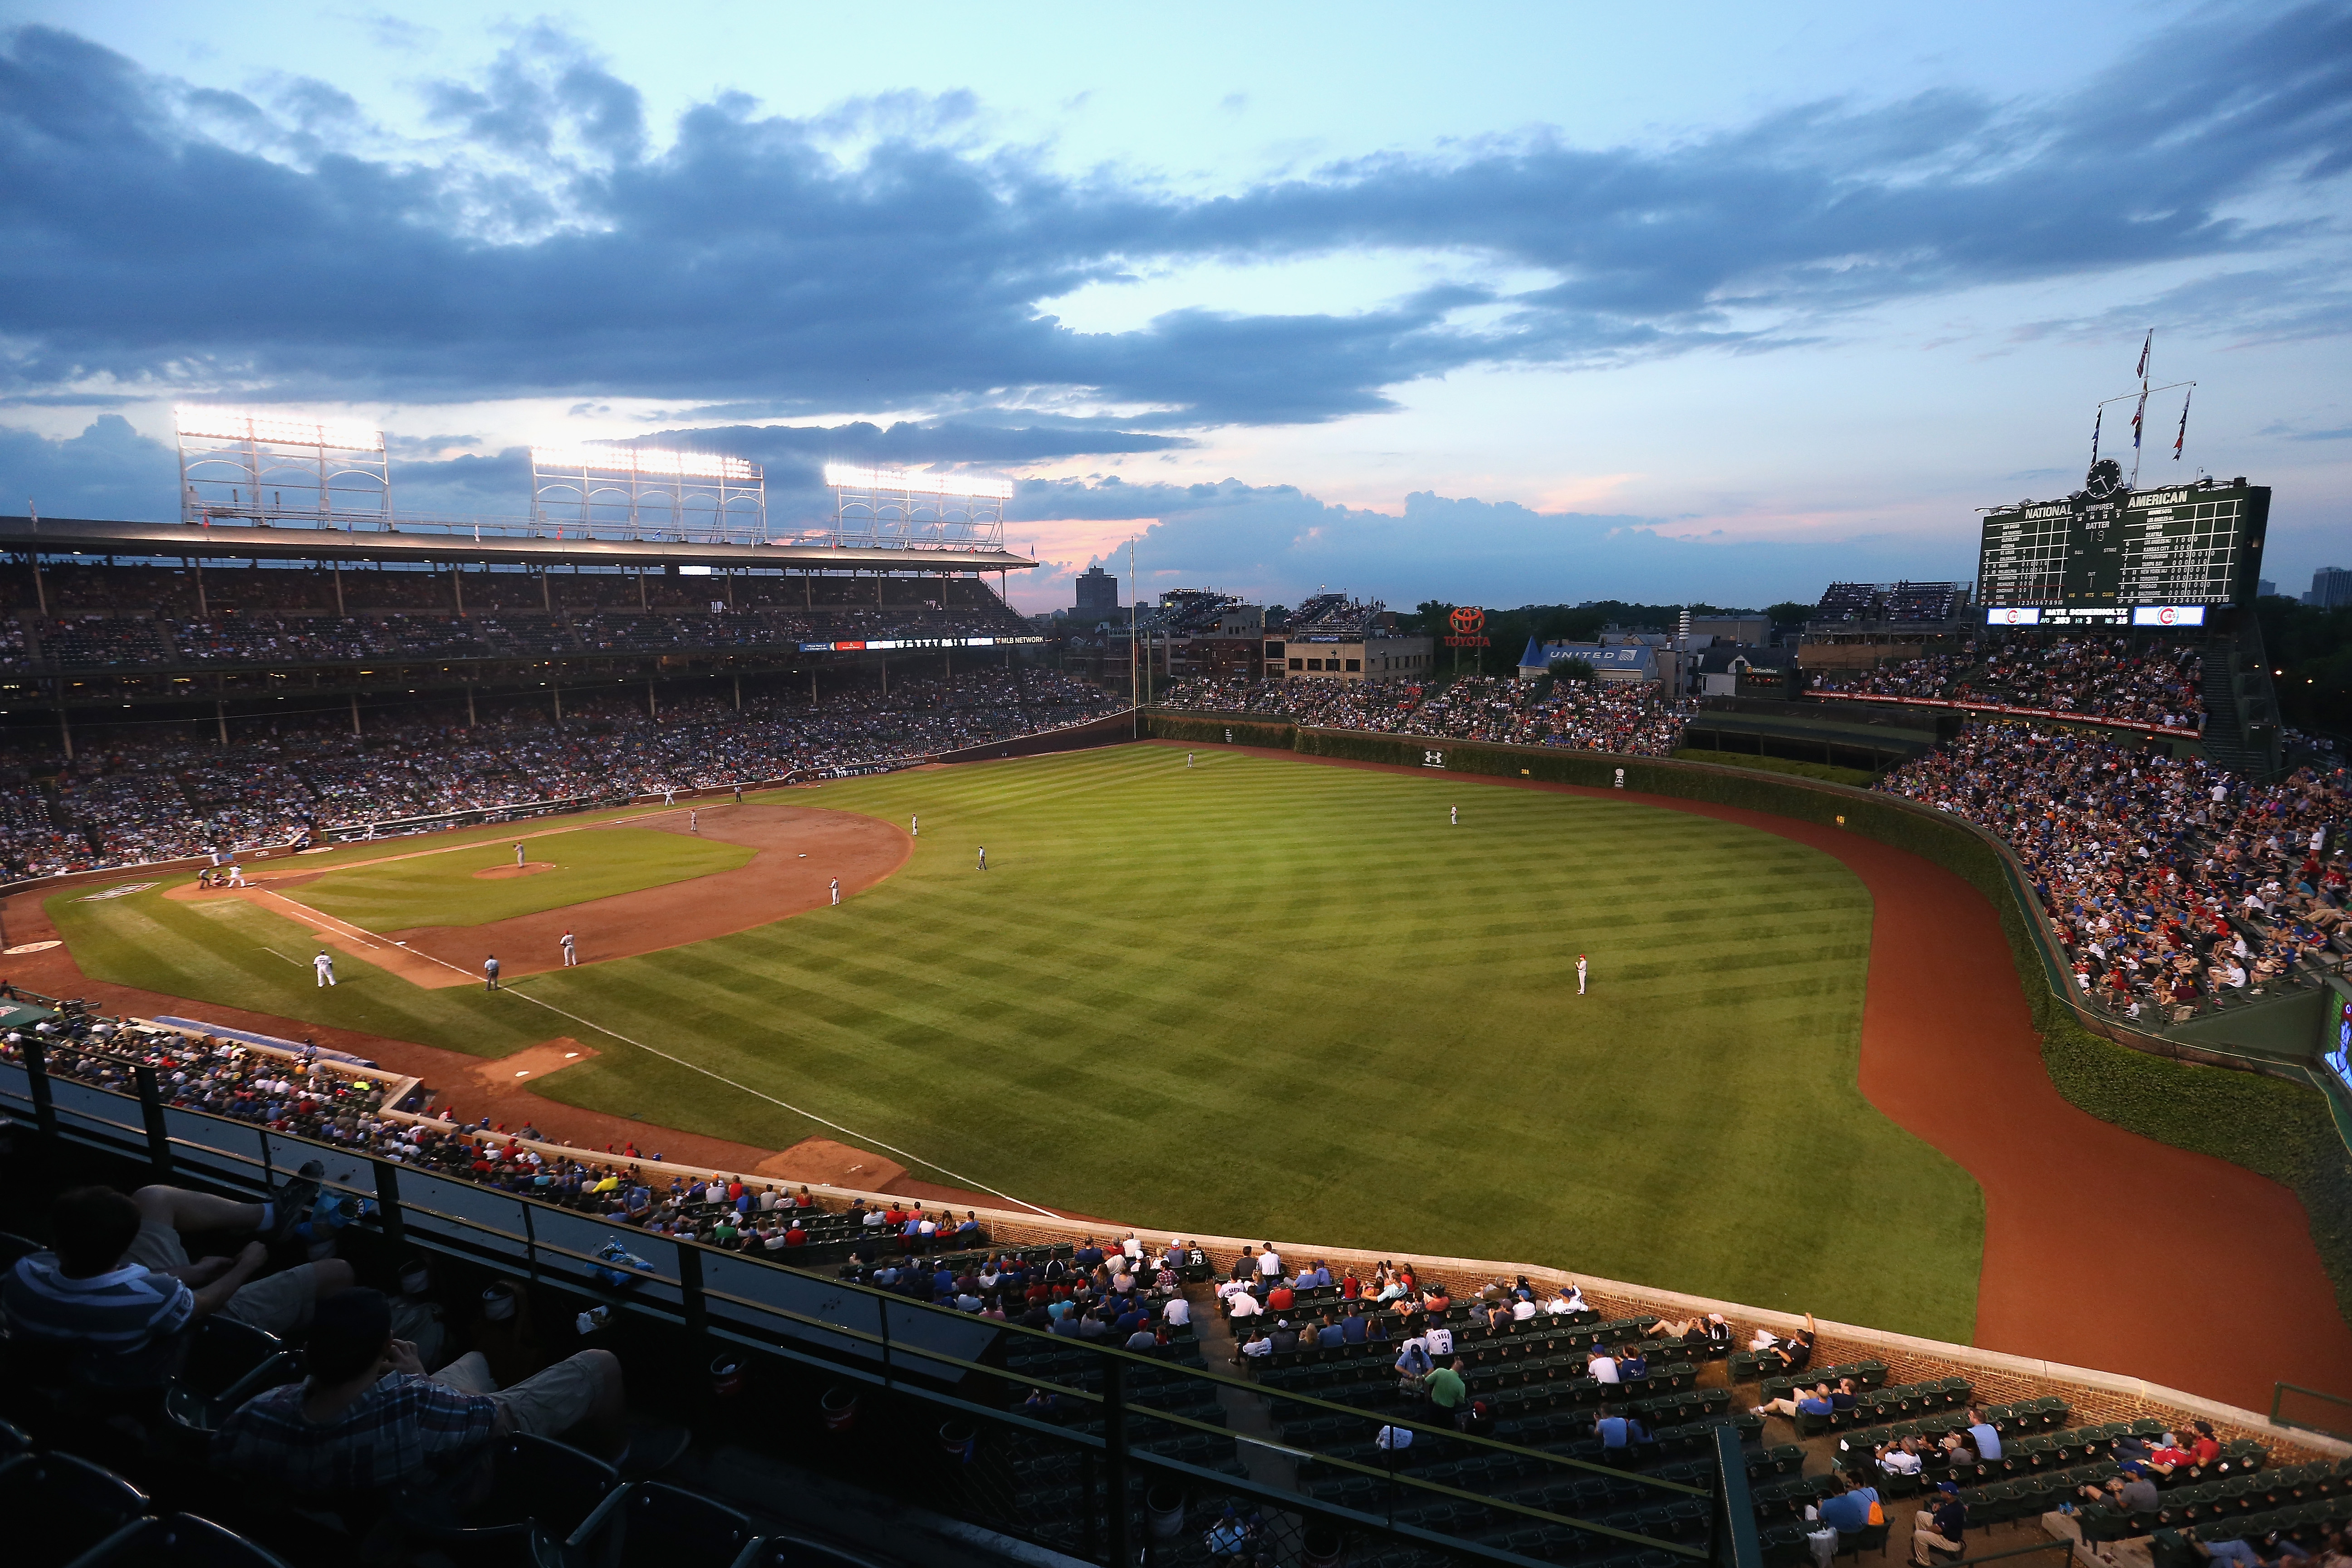 Chicago's landmarks commission unanimously approved a multimillion-dollar renovation  July 10 of Wrigley Field, home of baseball's Chicago Cubs.